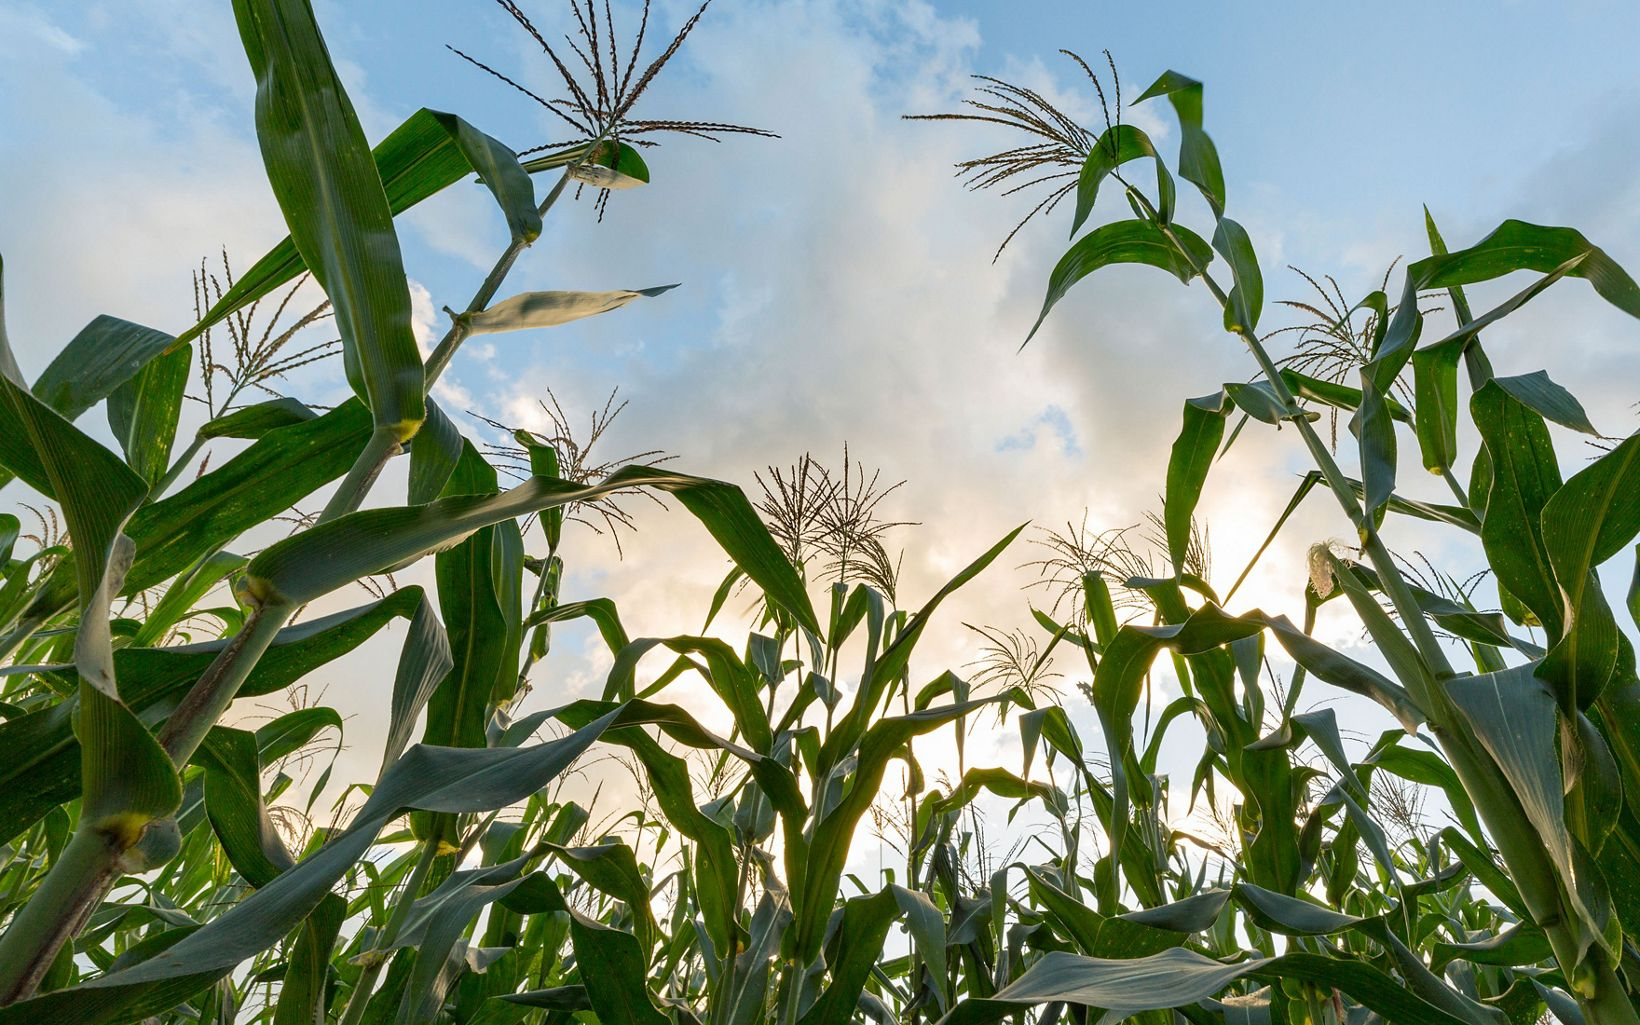 Promoting better agriculture to reduce emissions.